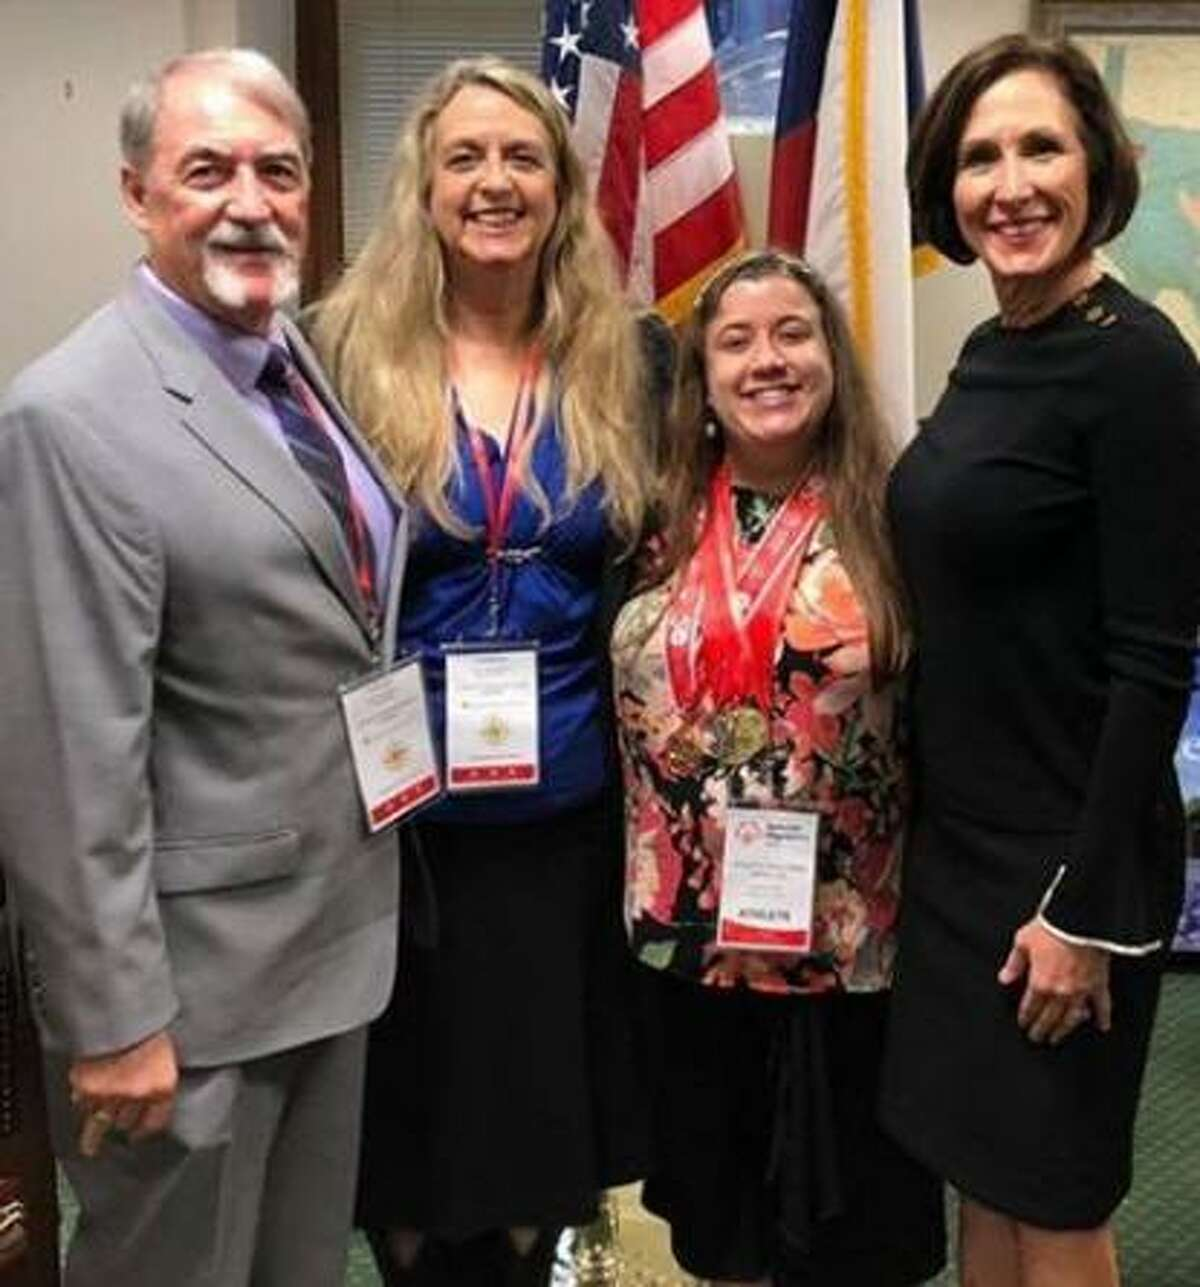 During Special Olympics Texas Capitol Day on March 12 in Austin, Steve, Kari and Shelby Day visited with state Sen. Lois Kolkhorst.